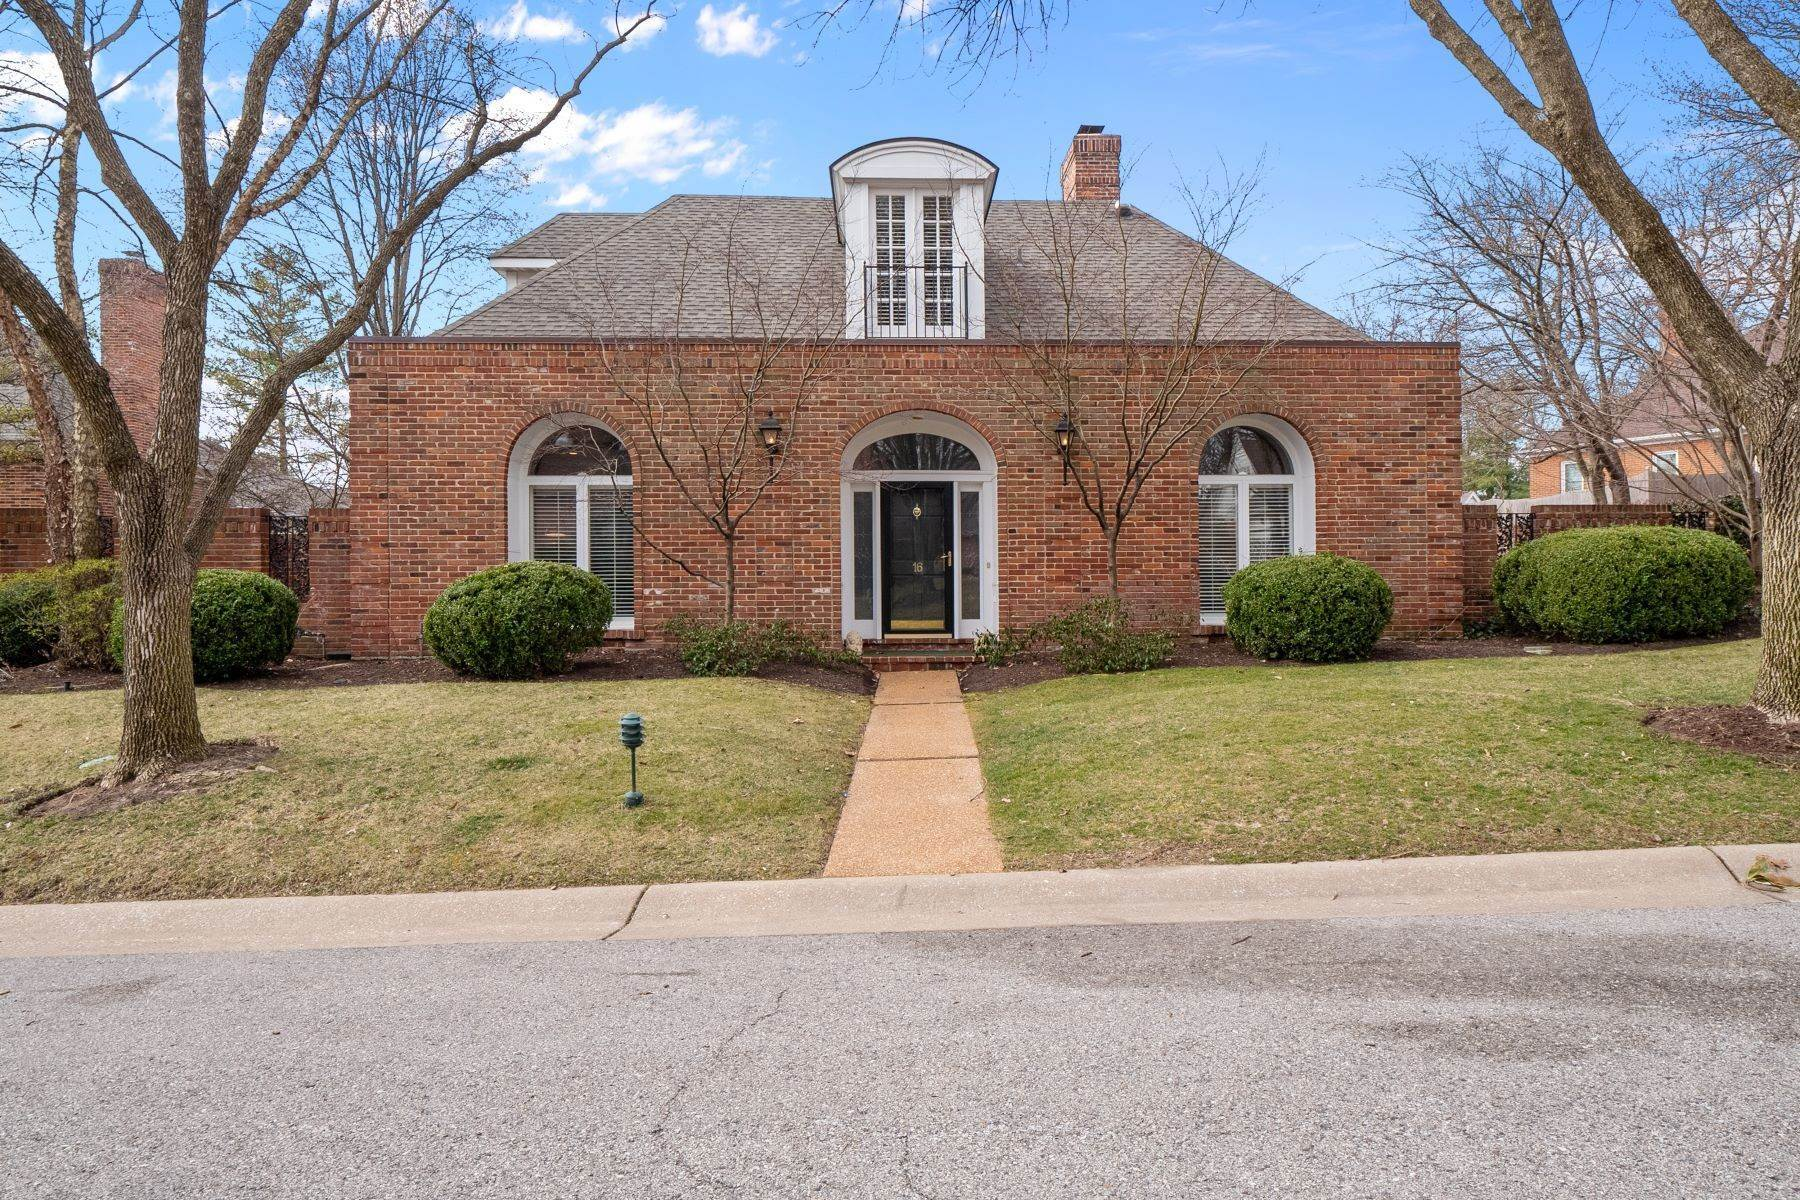 Single Family Homes for Sale at Crowned Jewel of Upper Price 16 Upper Price Road Olivette, Missouri 63132 United States